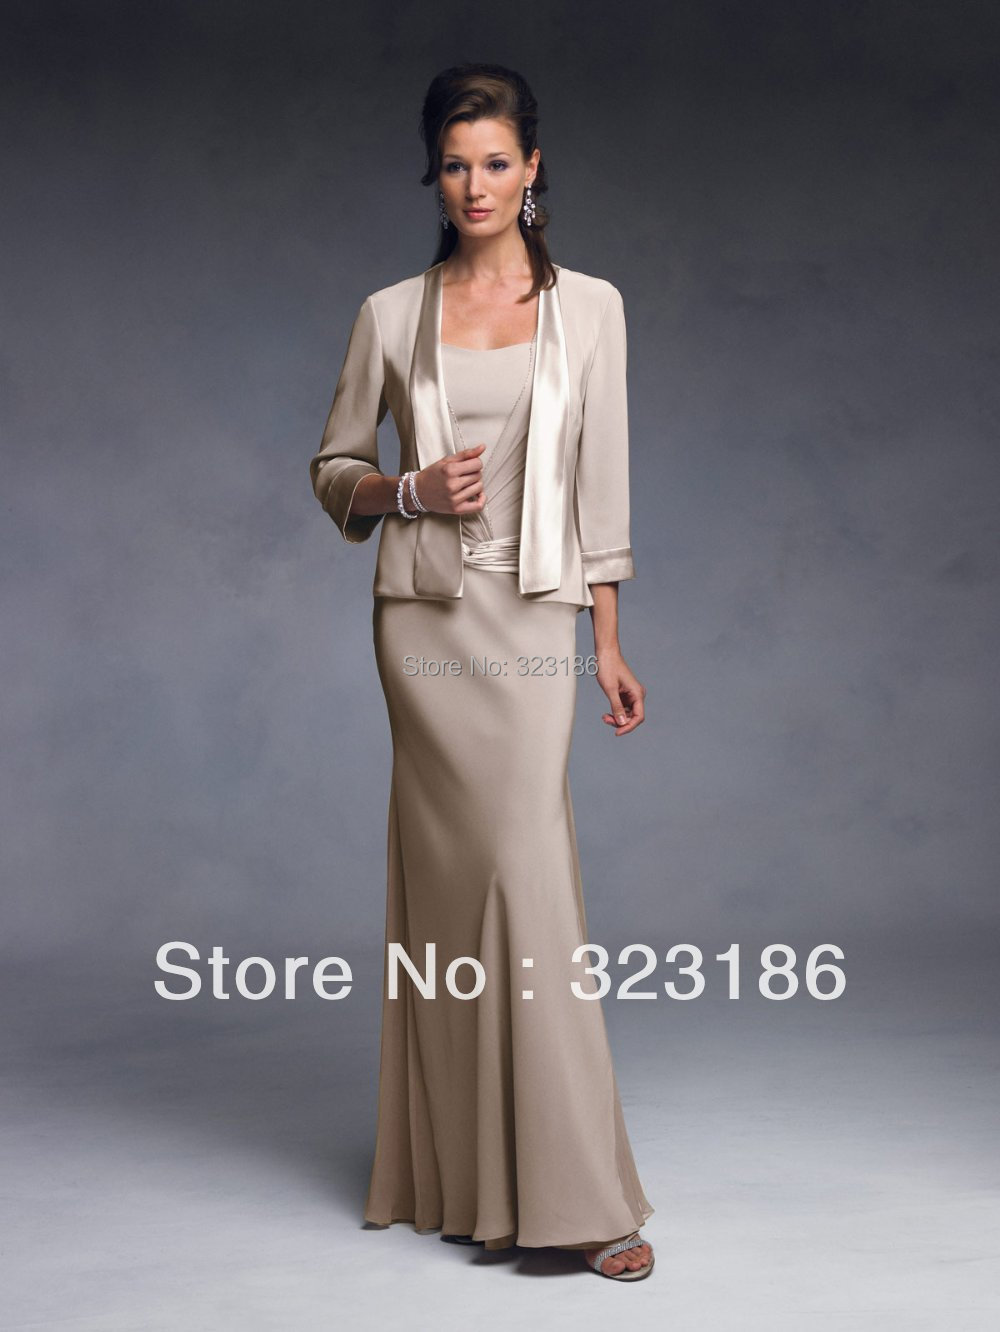 Long Evening Dress with Jacket